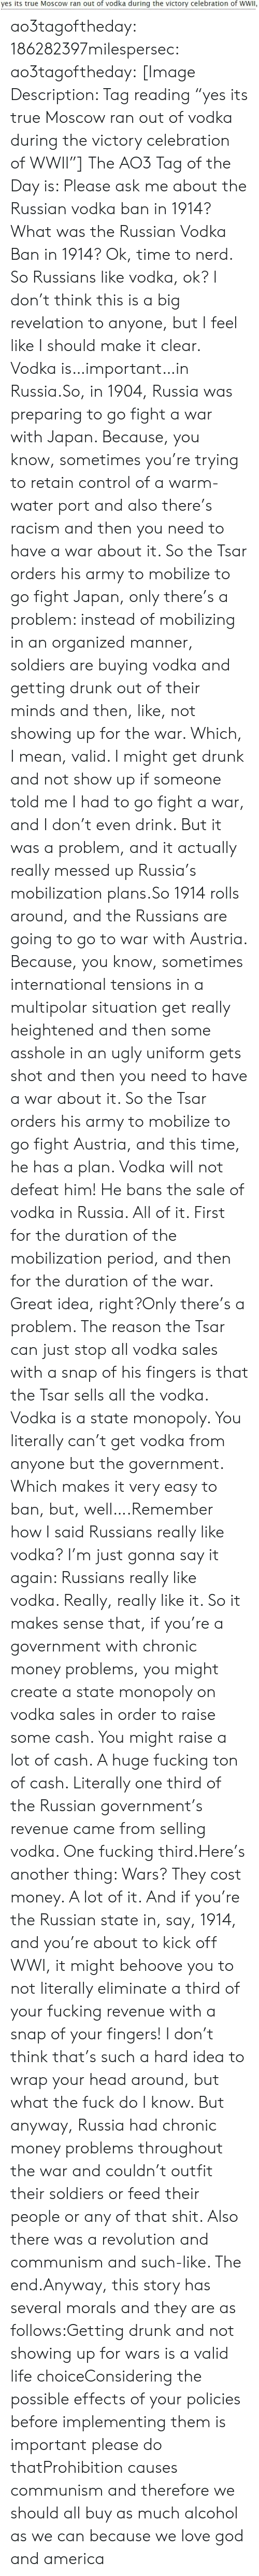 "Any Of: yes its true Moscow ran out of vodka during the victory celebration of WWII, ao3tagoftheday:  186282397milespersec:  ao3tagoftheday:  [Image Description: Tag reading ""yes its true Moscow ran out of vodka during the victory celebration of WWII""]  The AO3 Tag of the Day is: Please ask me about the Russian vodka ban in 1914?   What was the Russian Vodka Ban in 1914?  Ok, time to nerd. So Russians like vodka, ok? I don't think this is a big revelation to anyone, but I feel like I should make it clear. Vodka is…important…in Russia.So, in 1904, Russia was preparing to go fight a war with Japan. Because, you know, sometimes you're trying to retain control of a warm-water port and also there's racism and then you need to have a war about it. So the Tsar orders his army to mobilize to go fight Japan, only there's a problem: instead of mobilizing in an organized manner, soldiers are buying vodka and getting drunk out of their minds and then, like, not showing up for the war. Which, I mean, valid. I might get drunk and not show up if someone told me I had to go fight a war, and I don't even drink. But it was a problem, and it actually really messed up Russia's mobilization plans.So 1914 rolls around, and the Russians are going to go to war with Austria. Because, you know, sometimes international tensions in a multipolar situation get really heightened and then some asshole in an ugly uniform gets shot and then you need to have a war about it. So the Tsar orders his army to mobilize to go fight Austria, and this time, he has a plan. Vodka will not defeat him! He bans the sale of vodka in Russia. All of it. First for the duration of the mobilization period, and then for the duration of the war. Great idea, right?Only there's a problem. The reason the Tsar can just stop all vodka sales with a snap of his fingers is that the Tsar sells all the vodka. Vodka is a state monopoly. You literally can't get vodka from anyone but the government. Which makes it very easy to ban, but, well….Remember how I said Russians really like vodka? I'm just gonna say it again: Russians really like vodka. Really, really like it. So it makes sense that, if you're a government with chronic money problems, you might create a state monopoly on vodka sales in order to raise some cash. You might raise a lot of cash. A huge fucking ton of cash. Literally one third of the Russian government's revenue came from selling vodka. One fucking third.Here's another thing: Wars? They cost money. A lot of it. And if you're the Russian state in, say, 1914, and you're about to kick off WWI, it might behoove you to not literally eliminate a third of your fucking revenue with a snap of your fingers! I don't think that's such a hard idea to wrap your head around, but what the fuck do I know. But anyway, Russia had chronic money problems throughout the war and couldn't outfit their soldiers or feed their people or any of that shit. Also there was a revolution and communism and such-like. The end.Anyway, this story has several morals and they are as follows:Getting drunk and not showing up for wars is a valid life choiceConsidering the possible effects of your policies before implementing them is important please do thatProhibition causes communism and therefore we should all buy as much alcohol as we can because we love god and america"